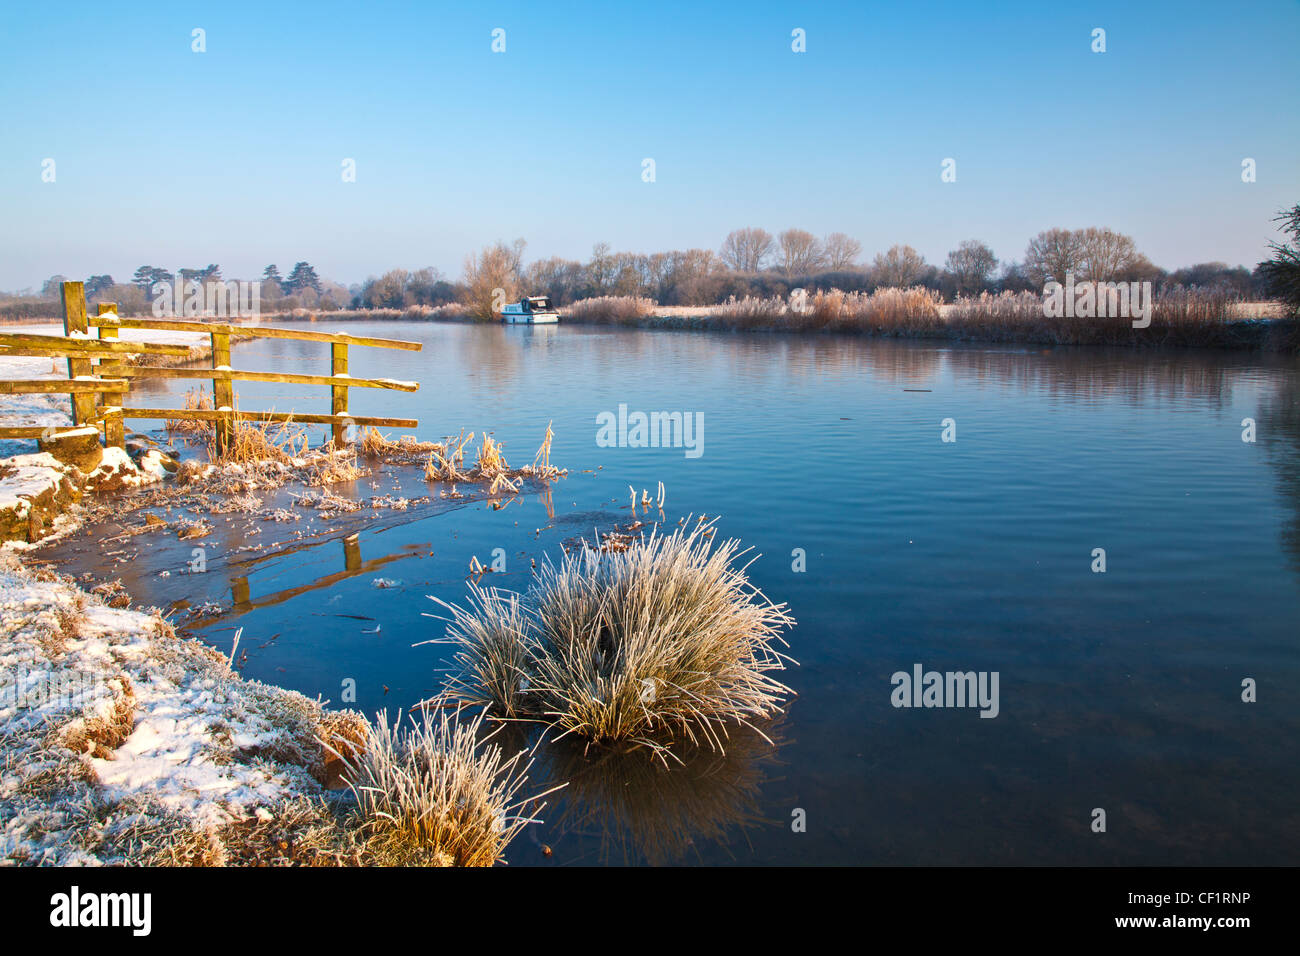 A frosty Cotswold winter morning on the River Thames at Lechlade, Gloucestershire, England, UK - Stock Image